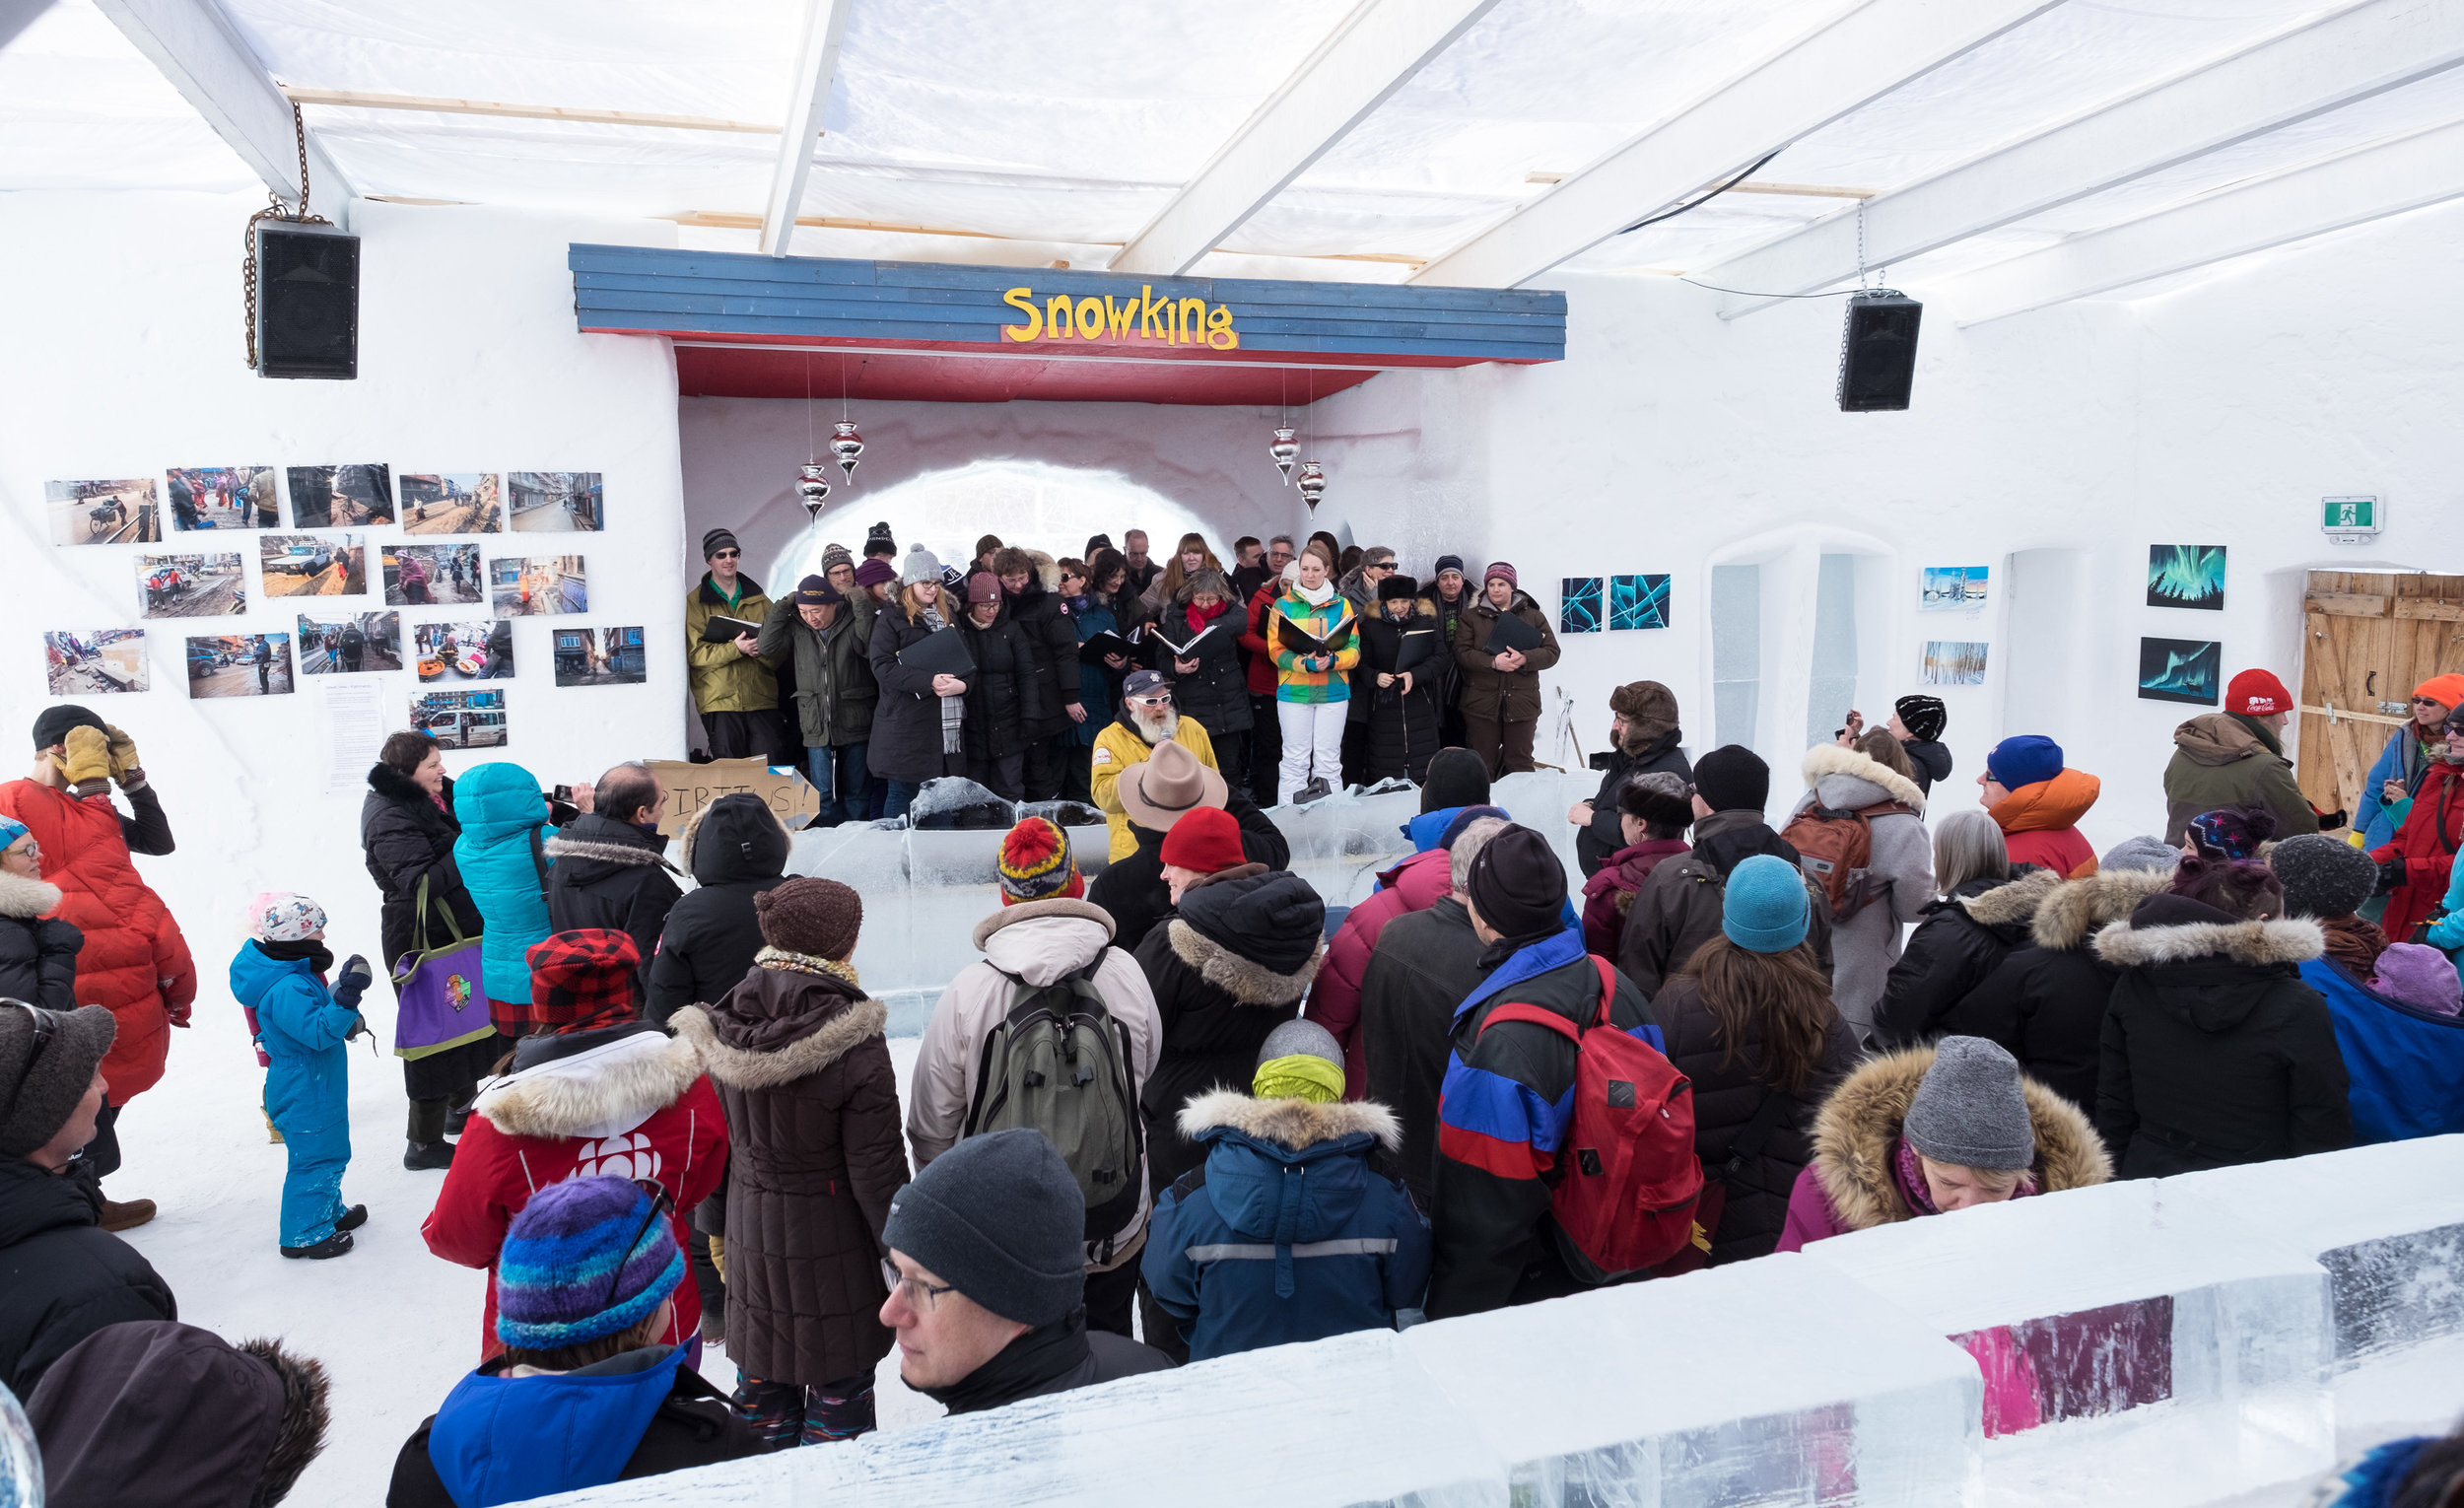 Spiritus Choir in Yellowknife at Snowking festival - performing 5.jpg